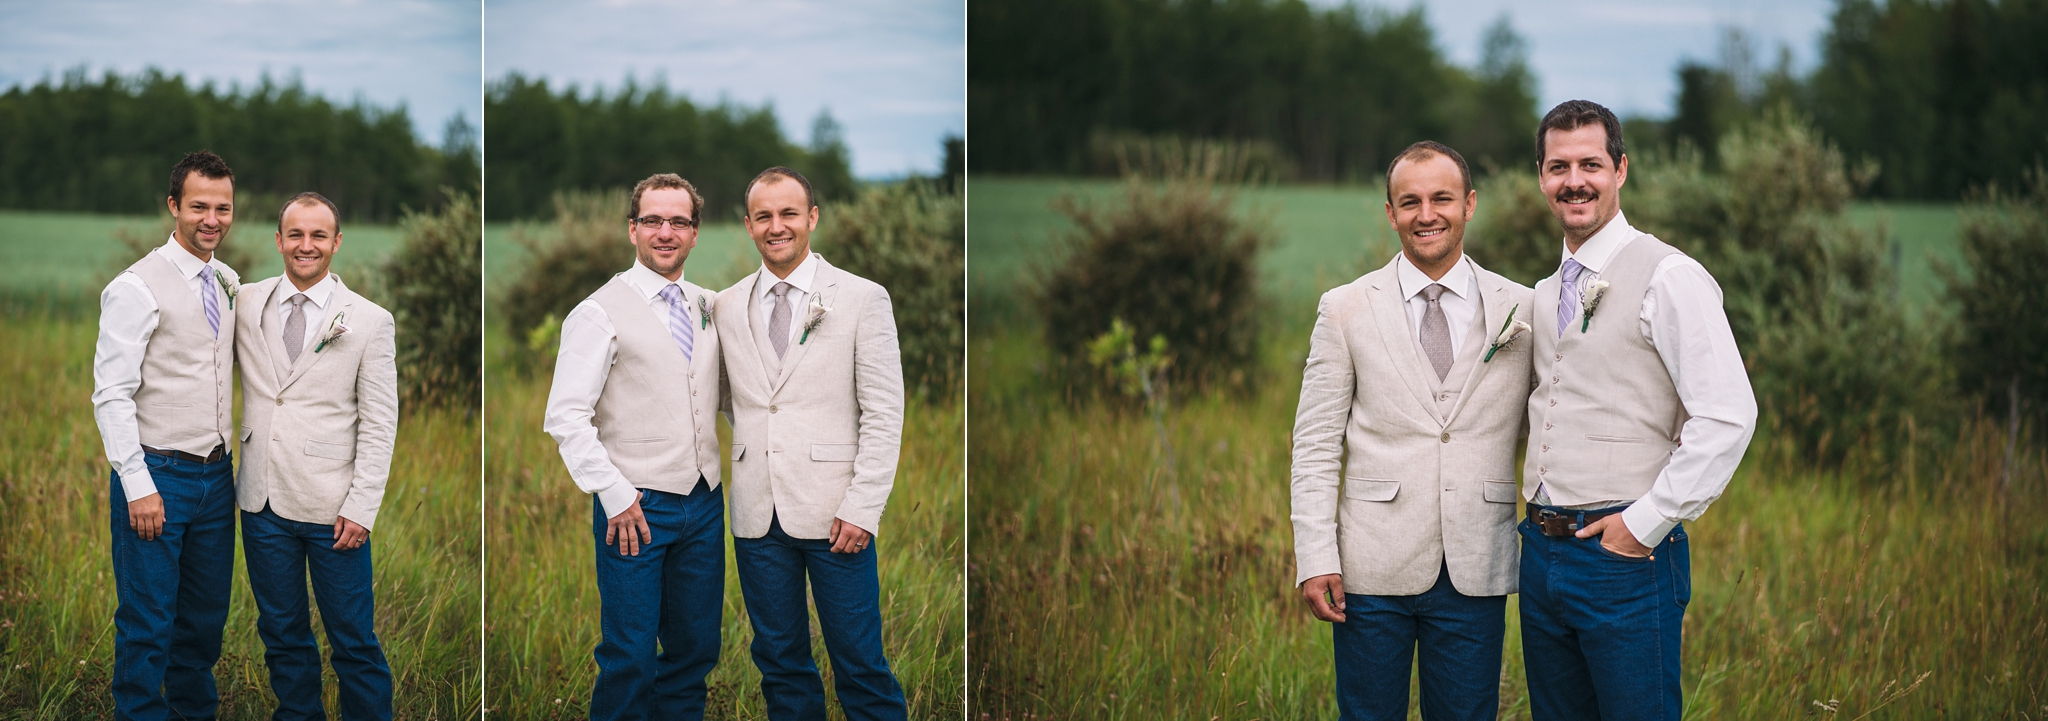 kaihla_tonai_intimate_wedding_elopement_photographer_2394